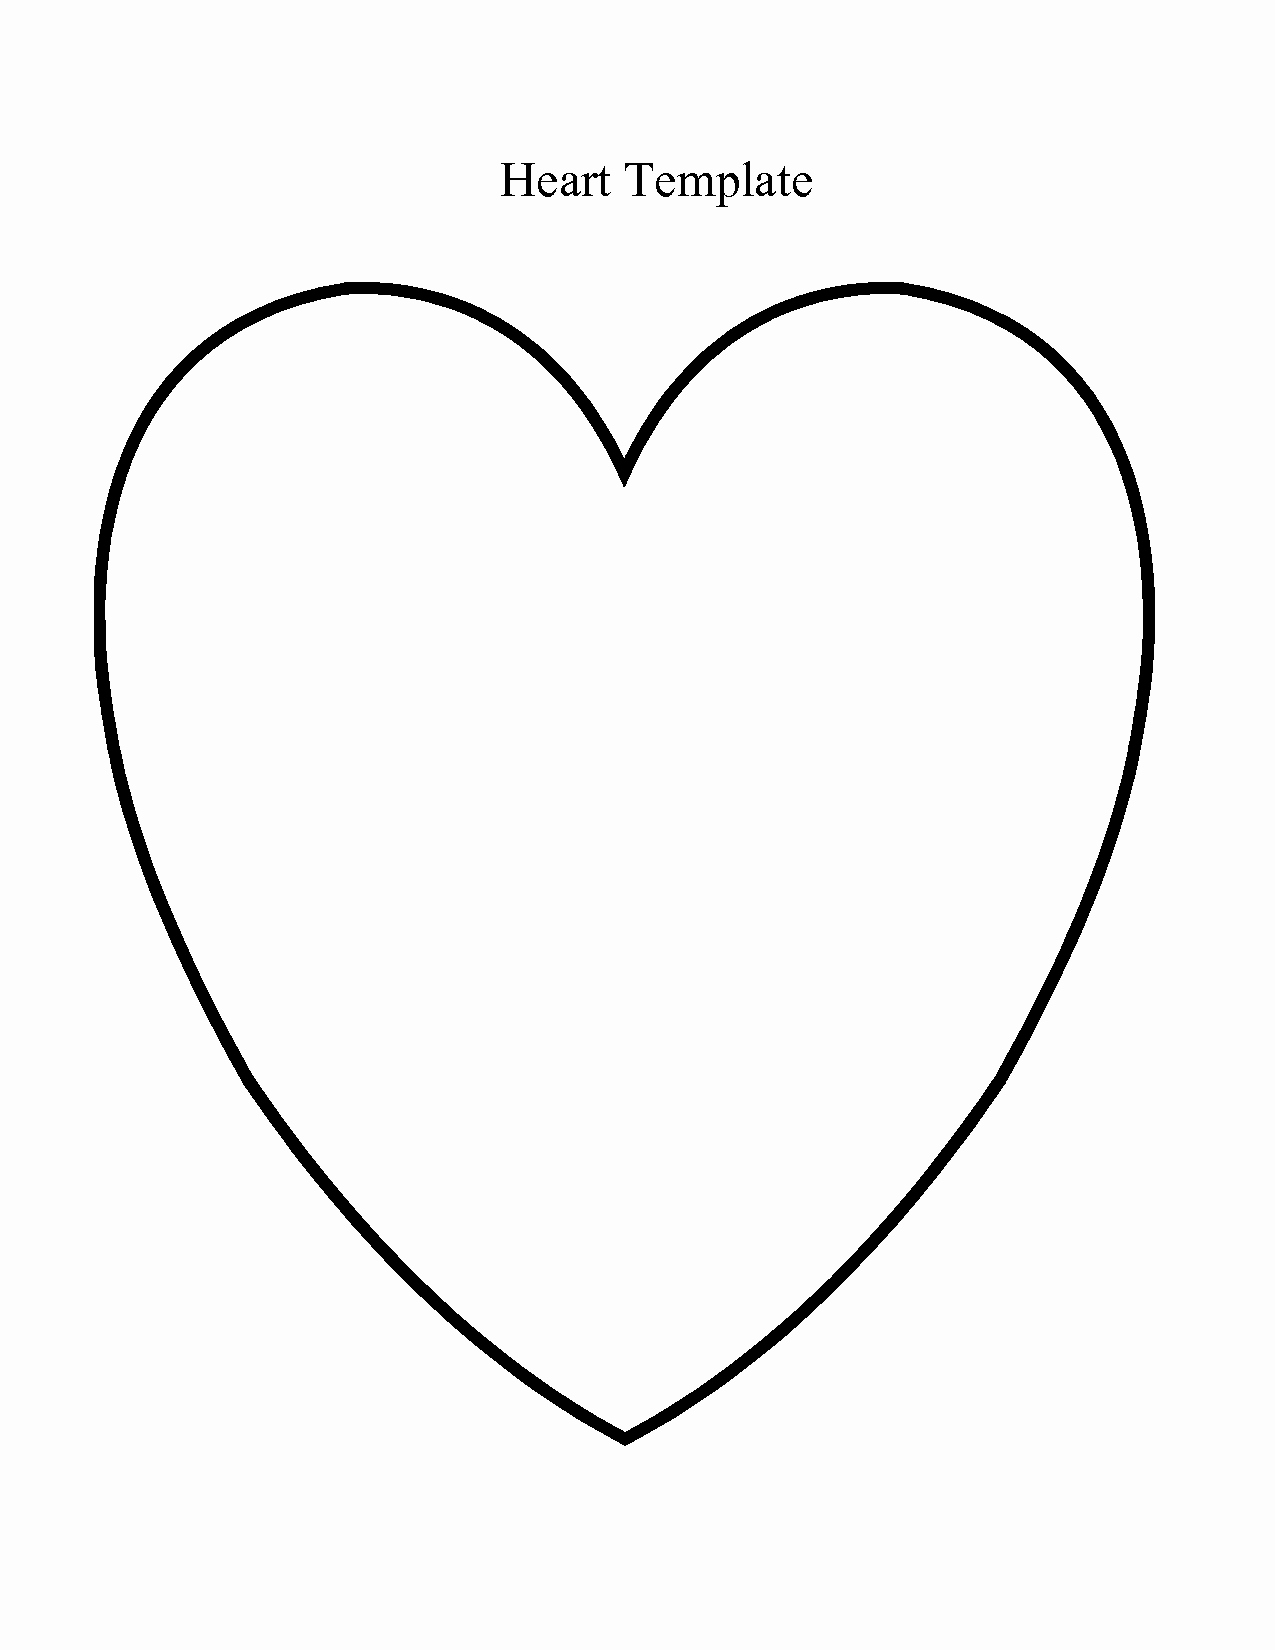 Large Heart Stencil Printable Luxury Heart Template Google Search Playgroup Crafts